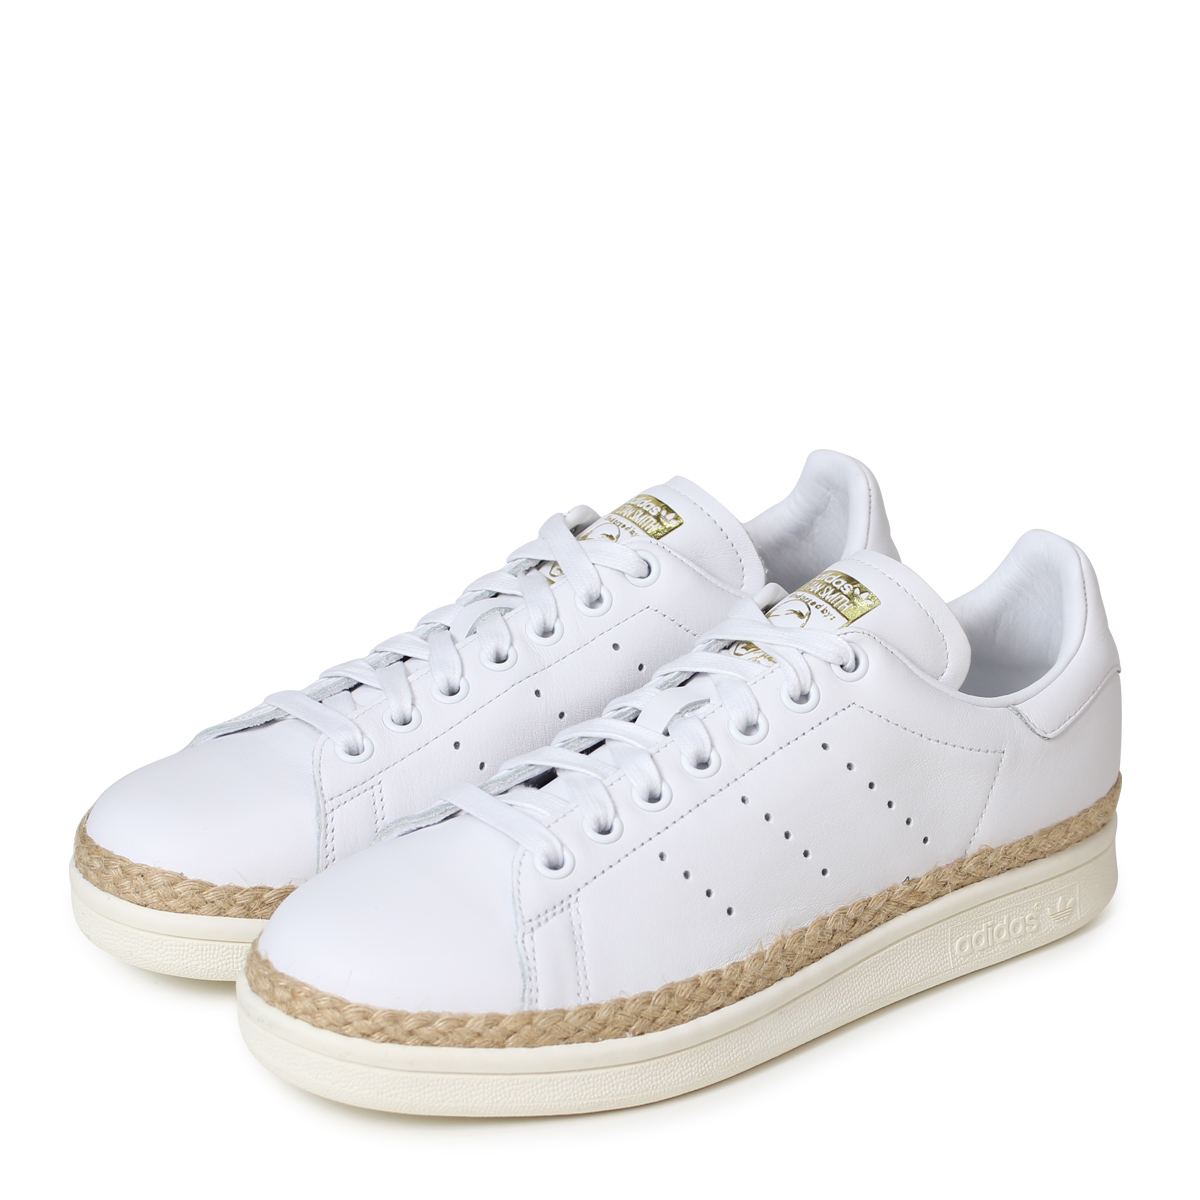 eca481b57f3 adidas Originals STAN SMITH NEW BOLD W Adidas Stan Smith Lady's sneakers  CQ2439 white originals ...